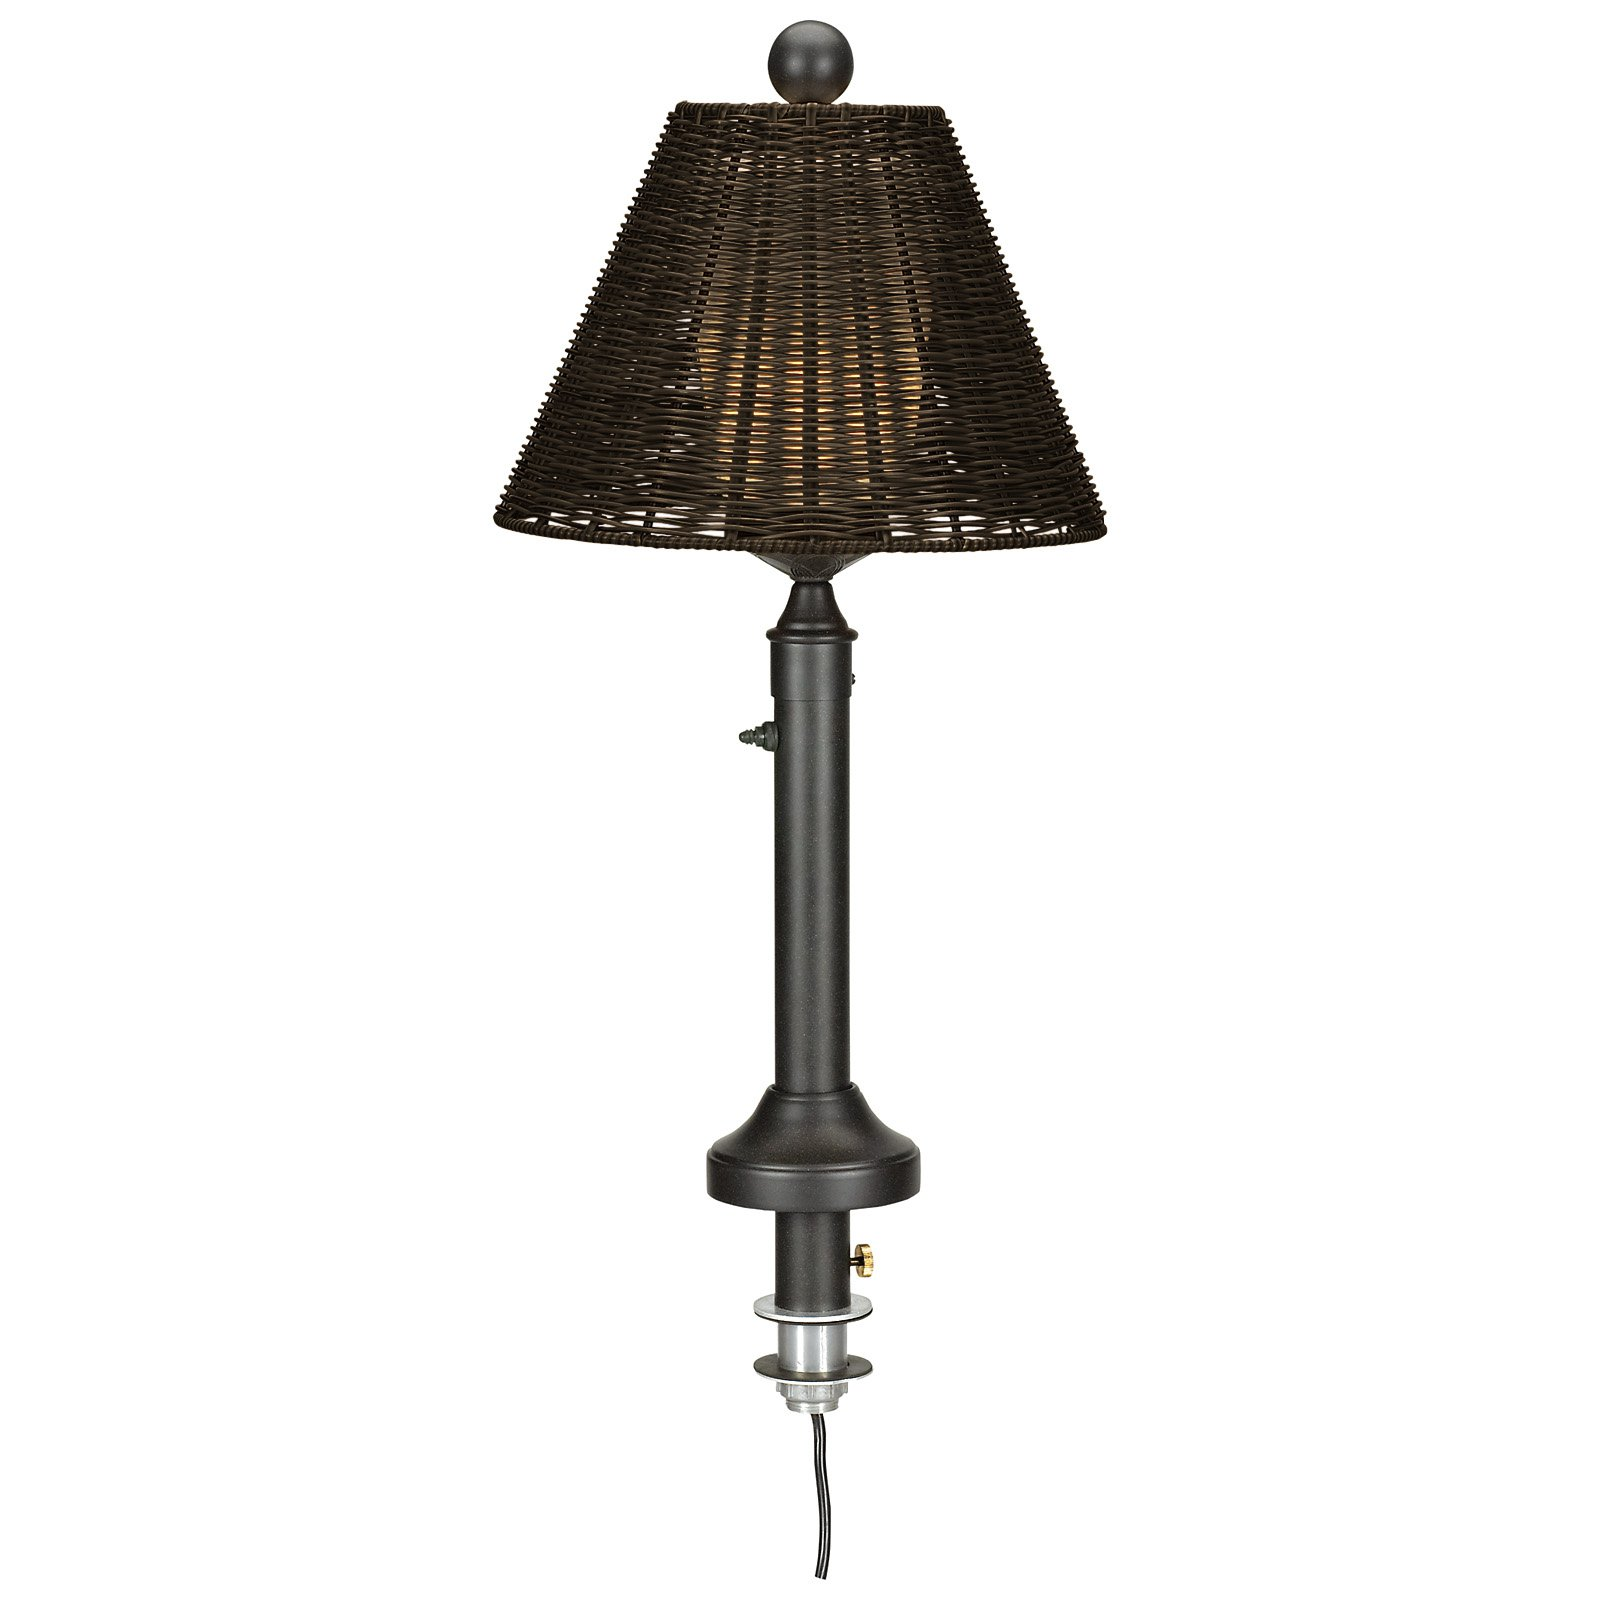 Tahti Outdoor Patio Table Umbrella Lamp Walmart